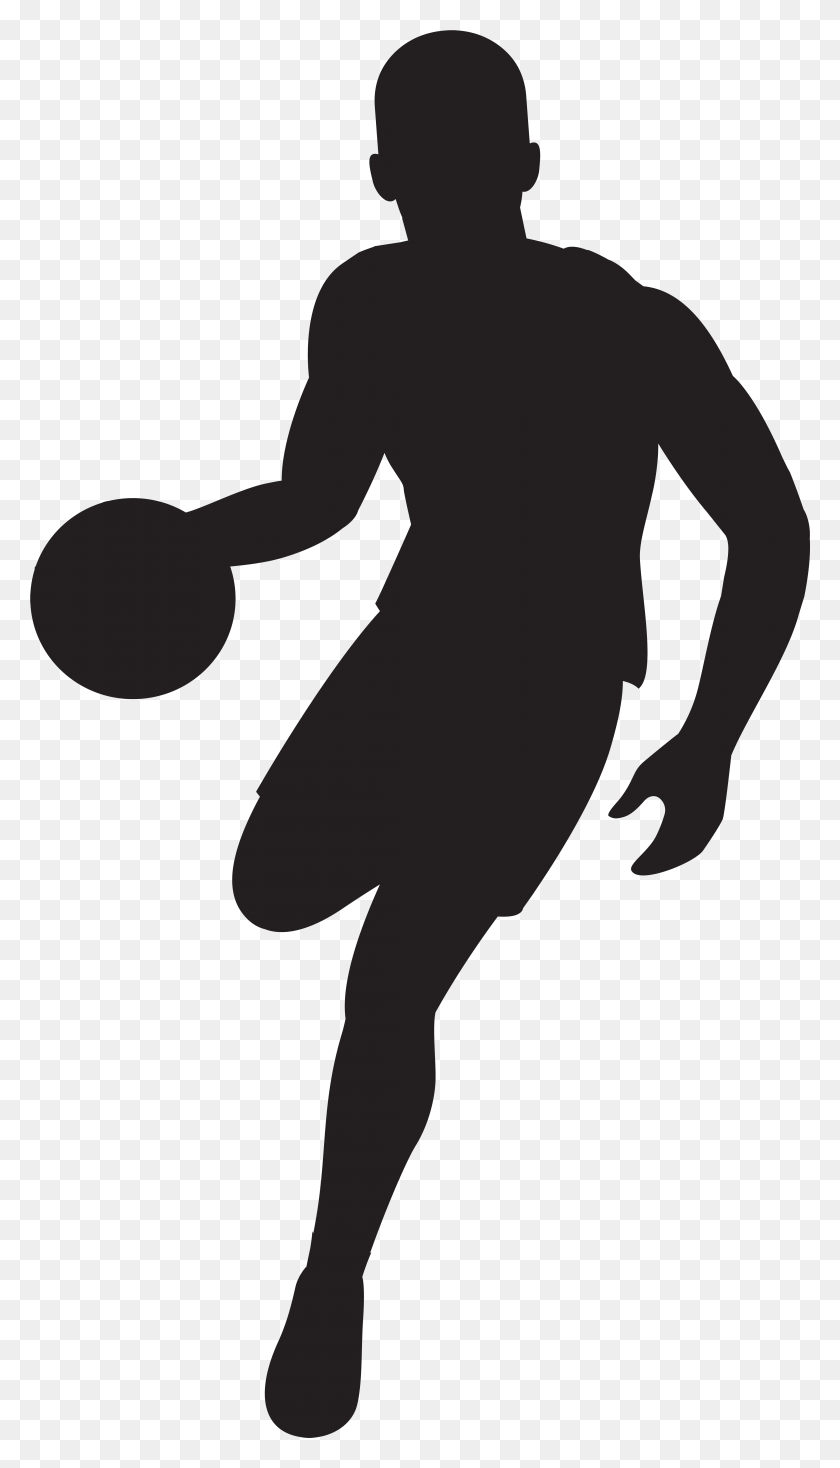 hight resolution of basketball player silhouette clip art gallery football player clipart free